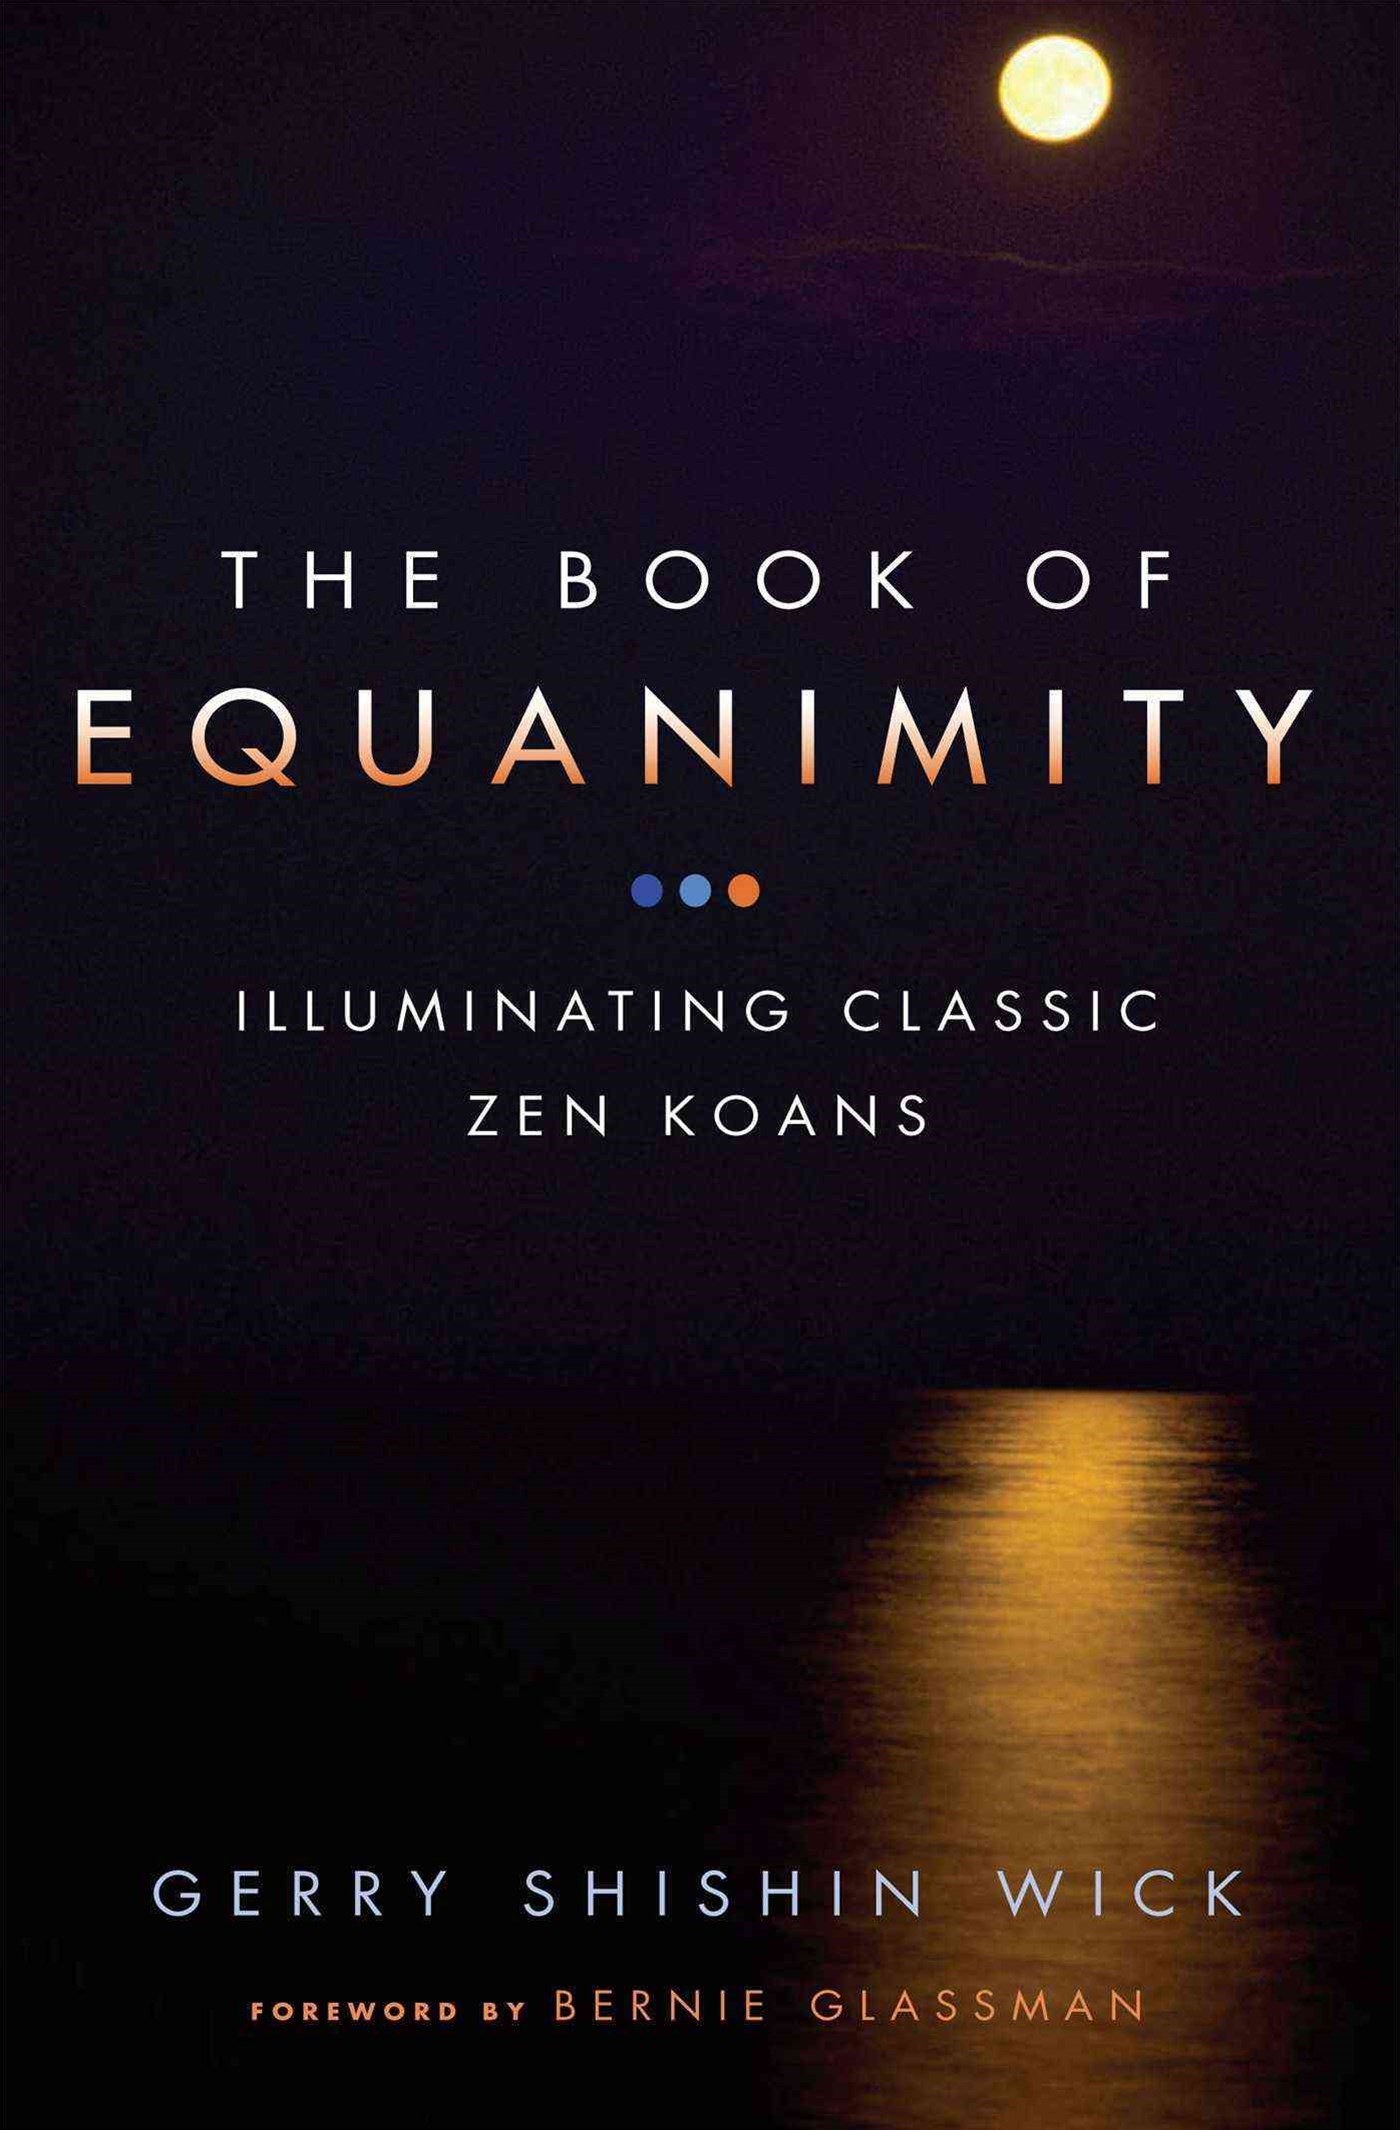 The Book of Equanimity